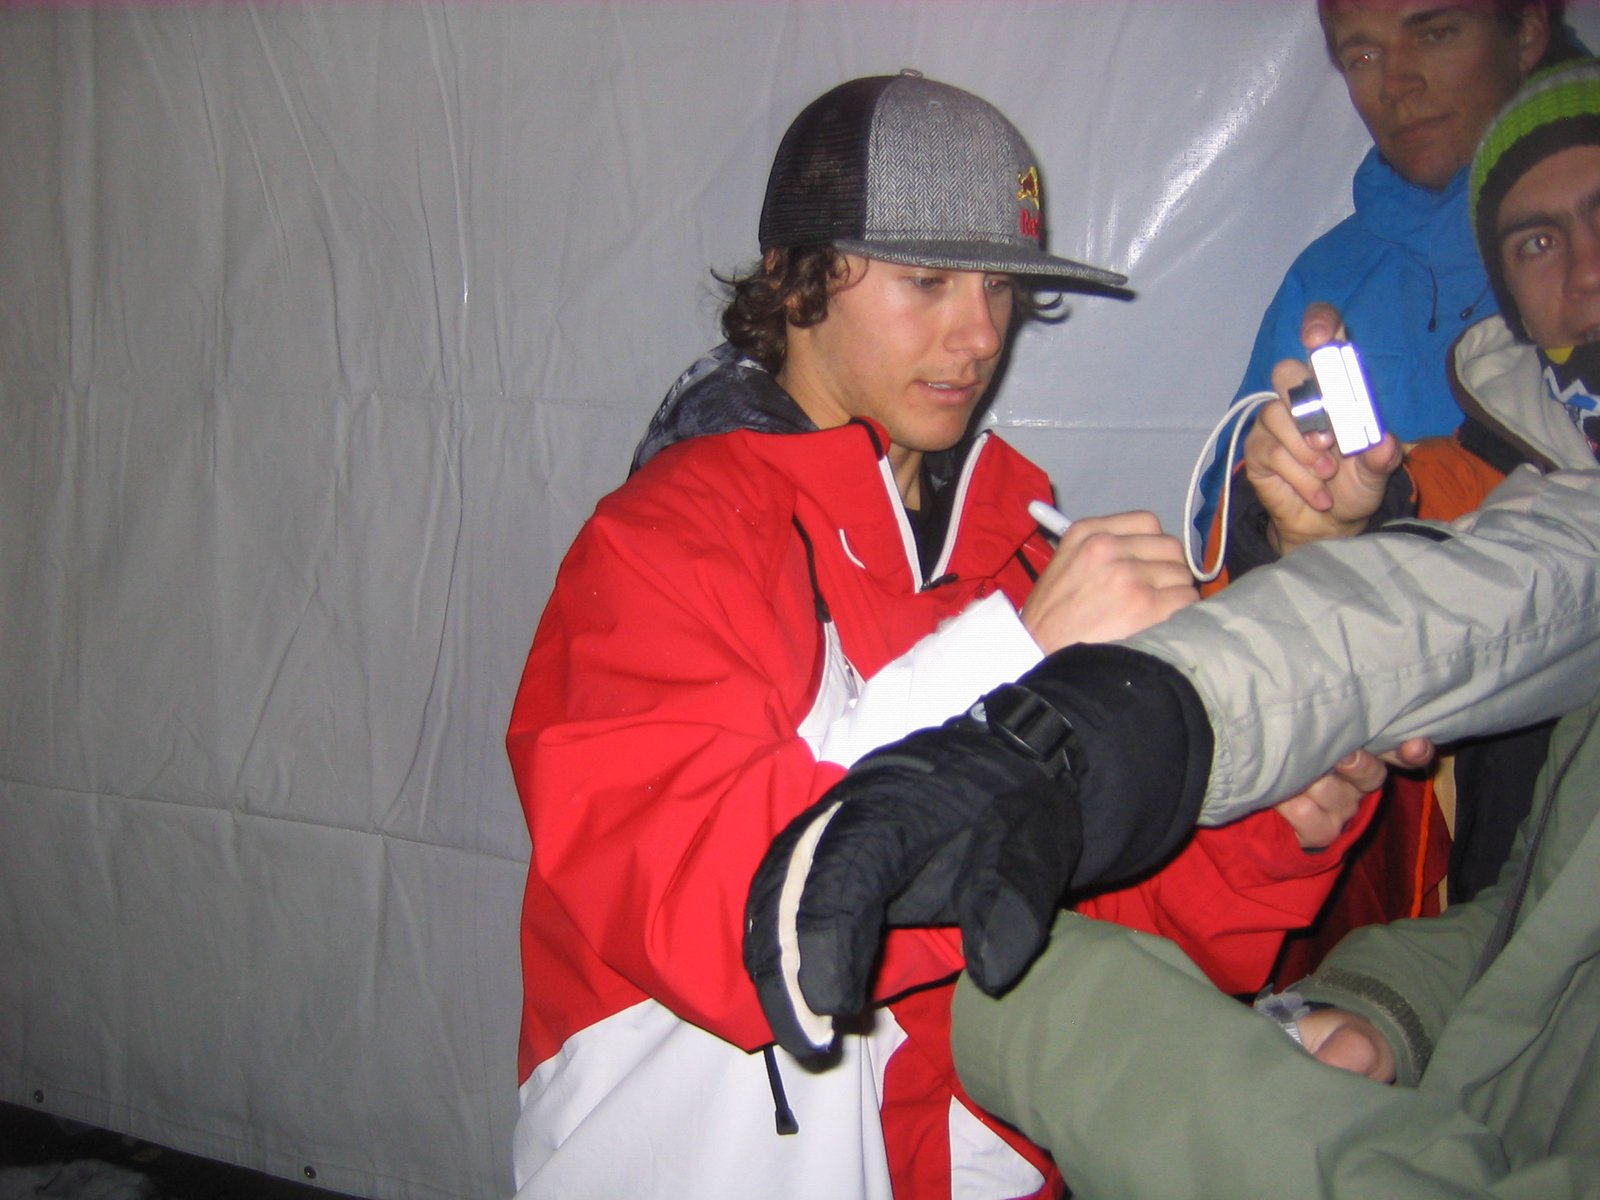 Simon signing for me.